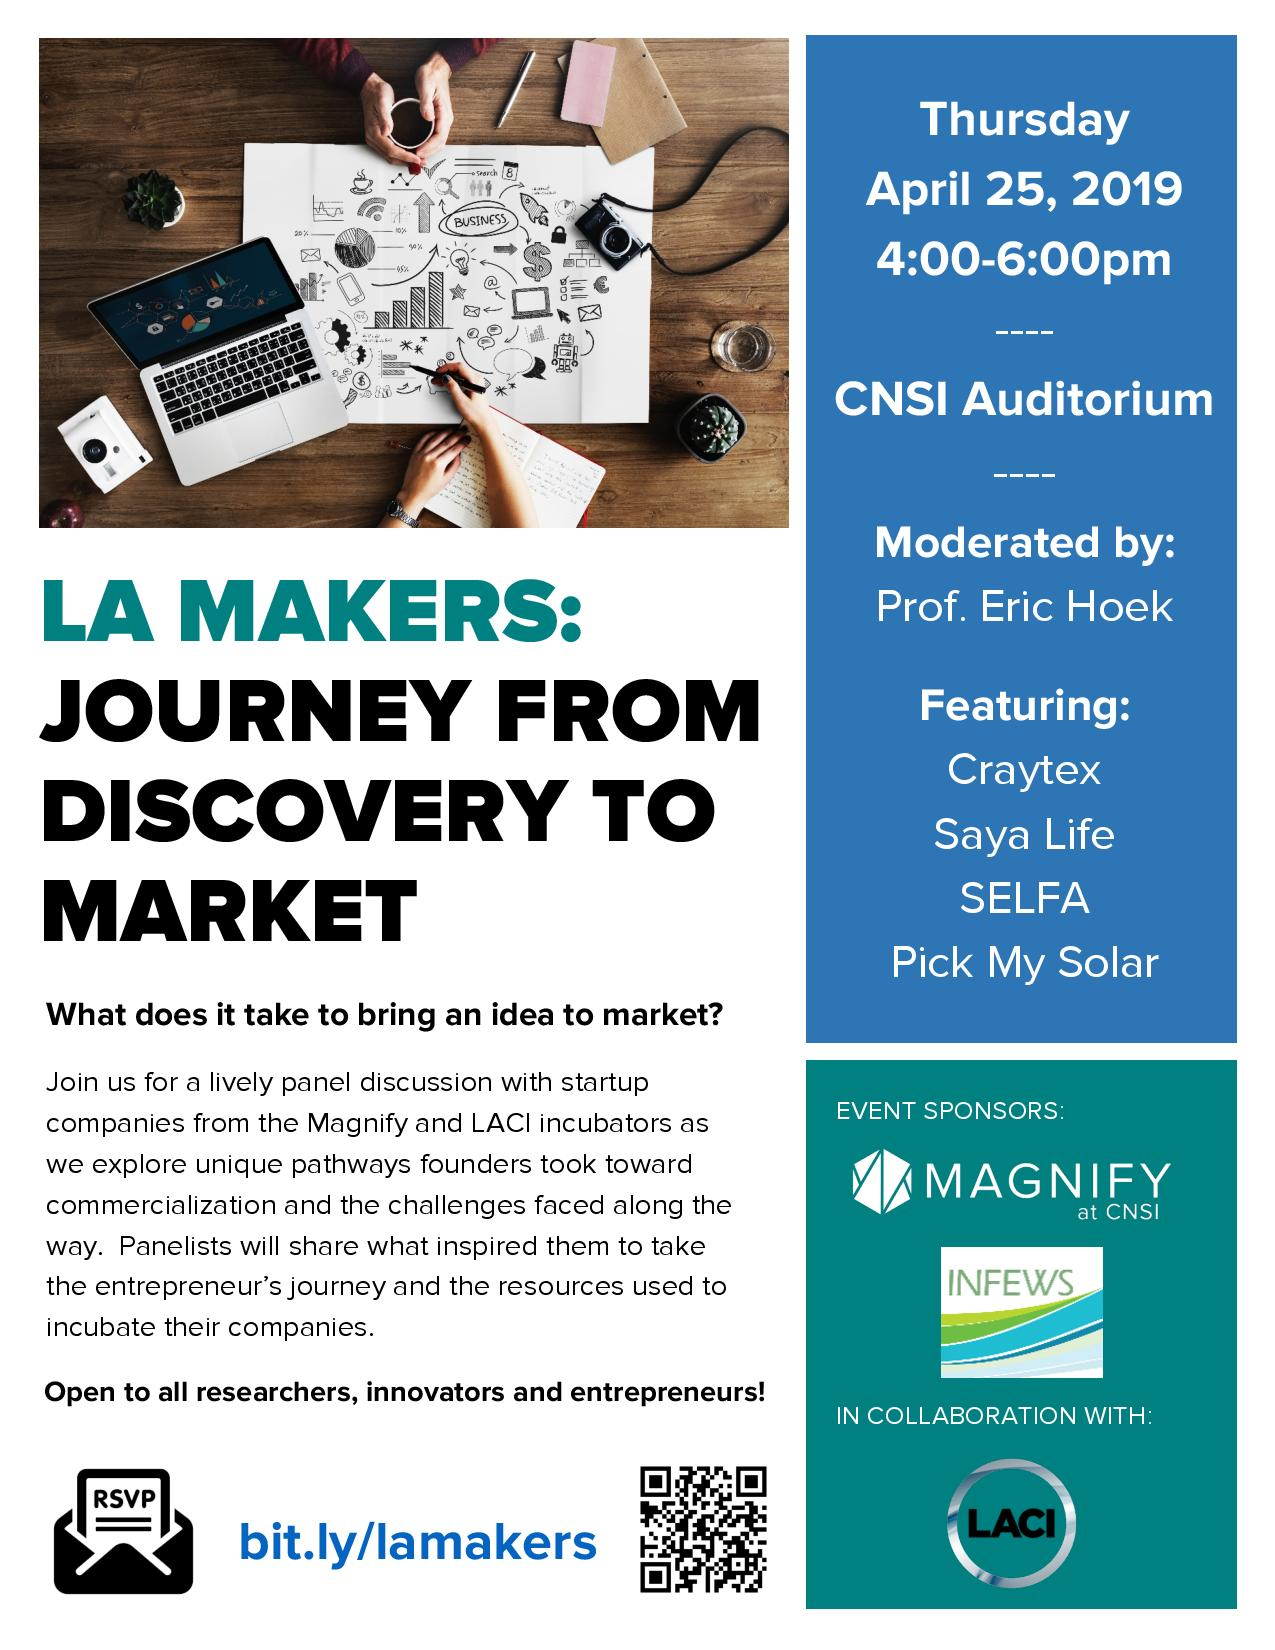 LA Makers Event Flyer_4.25.19-page-001.jpg